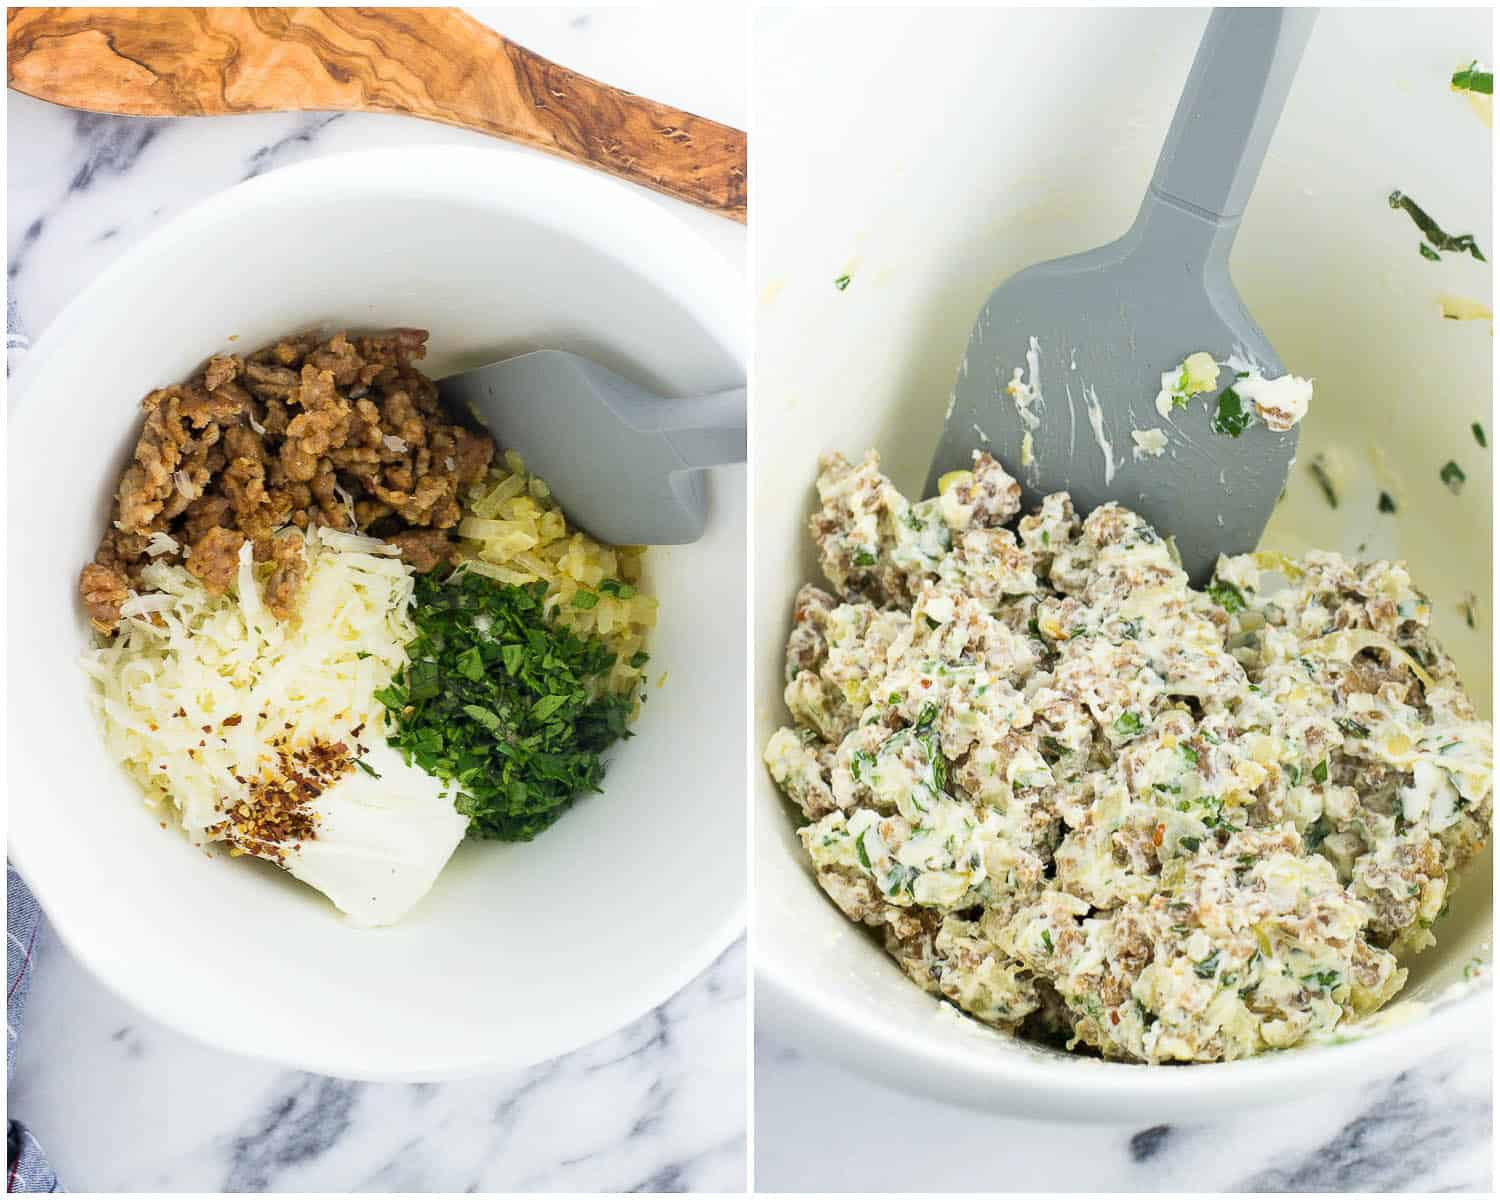 A side-by-side picture of the filling ingredients added to a bowl (left) and then mixed all together (right)